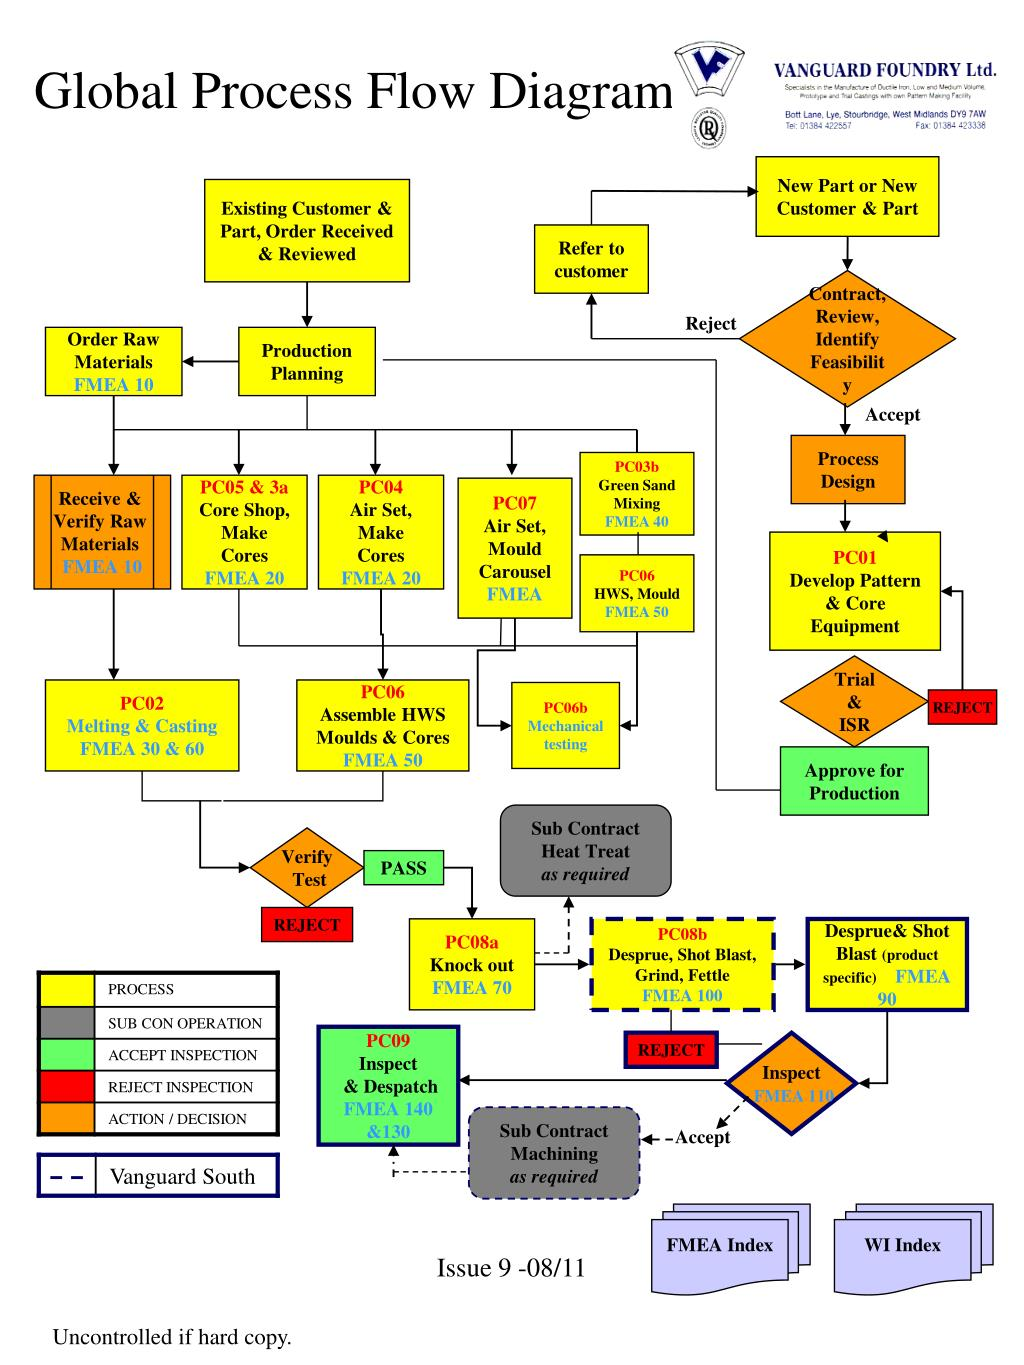 Ppt global process flow diagram powerpoint presentation id567845 global process flow diagram l ccuart Choice Image